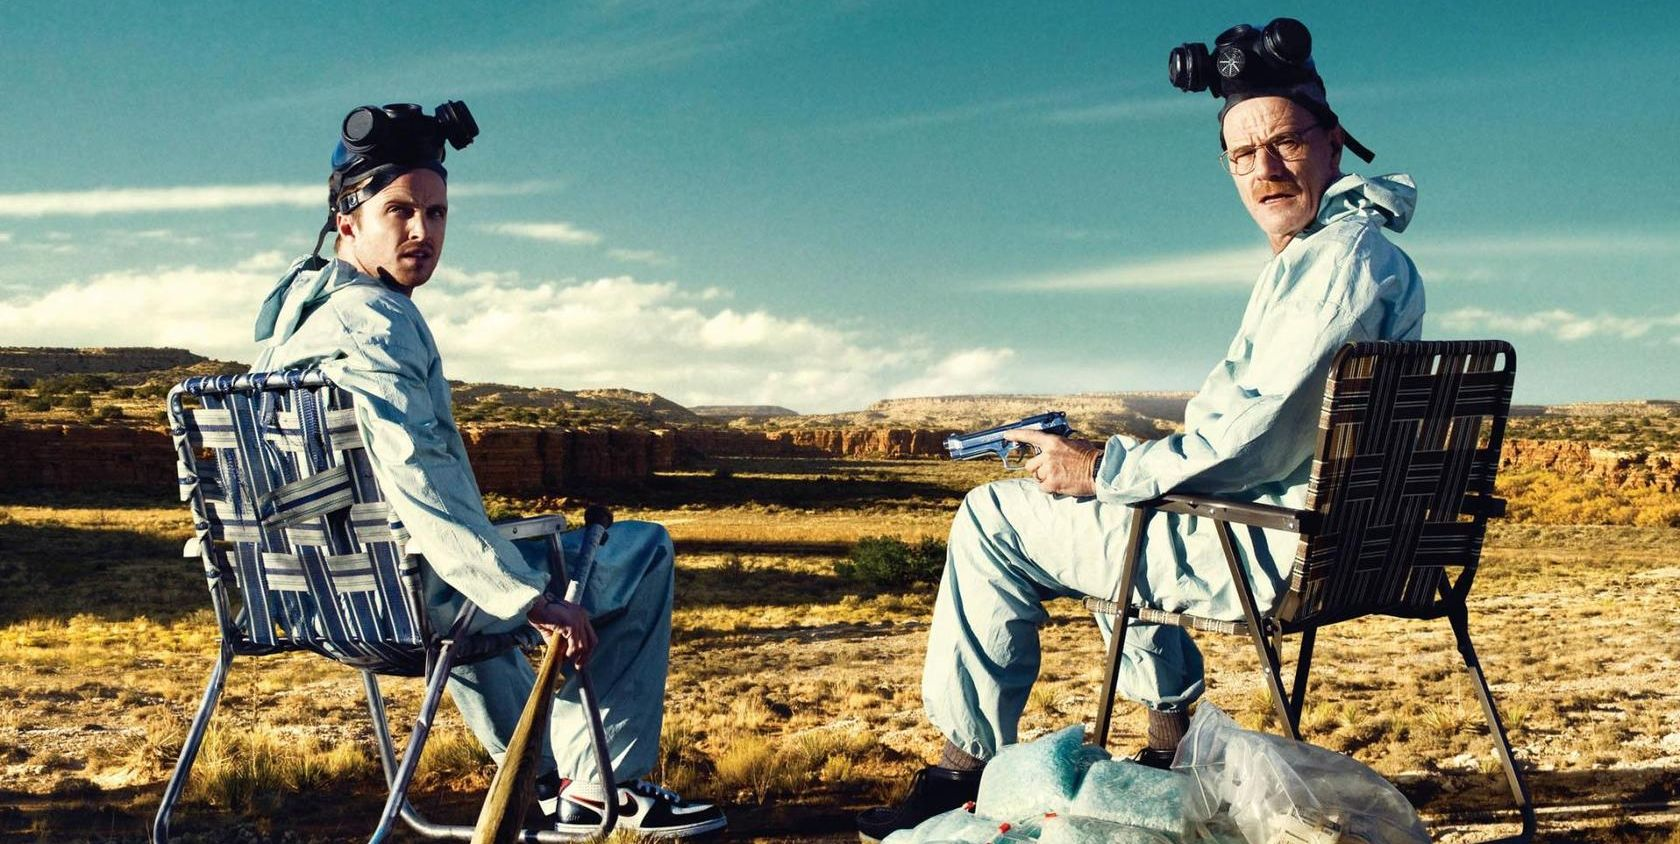 Bryan Cranston Used To Play A Cruel Prank On Aaron Paul While Filming Breaking Bad